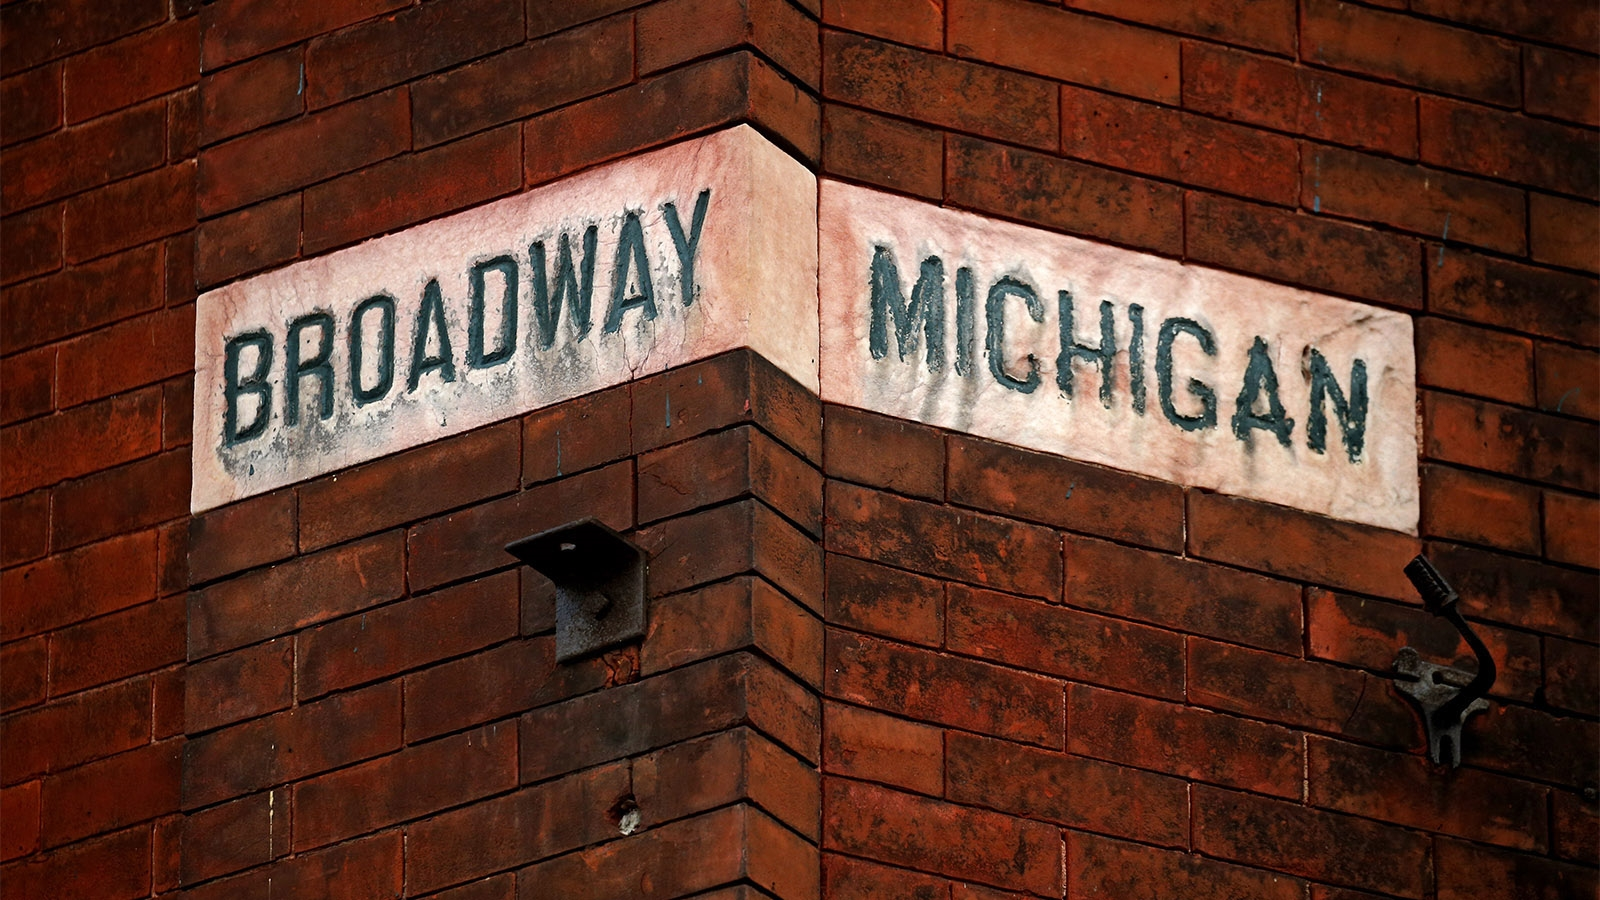 Day 174: June 23, 2018 - An old stone street sign embedded in the brick on the corner of the building  at Michigan and Broadway.  The building is slated to become the Nash Lofts.